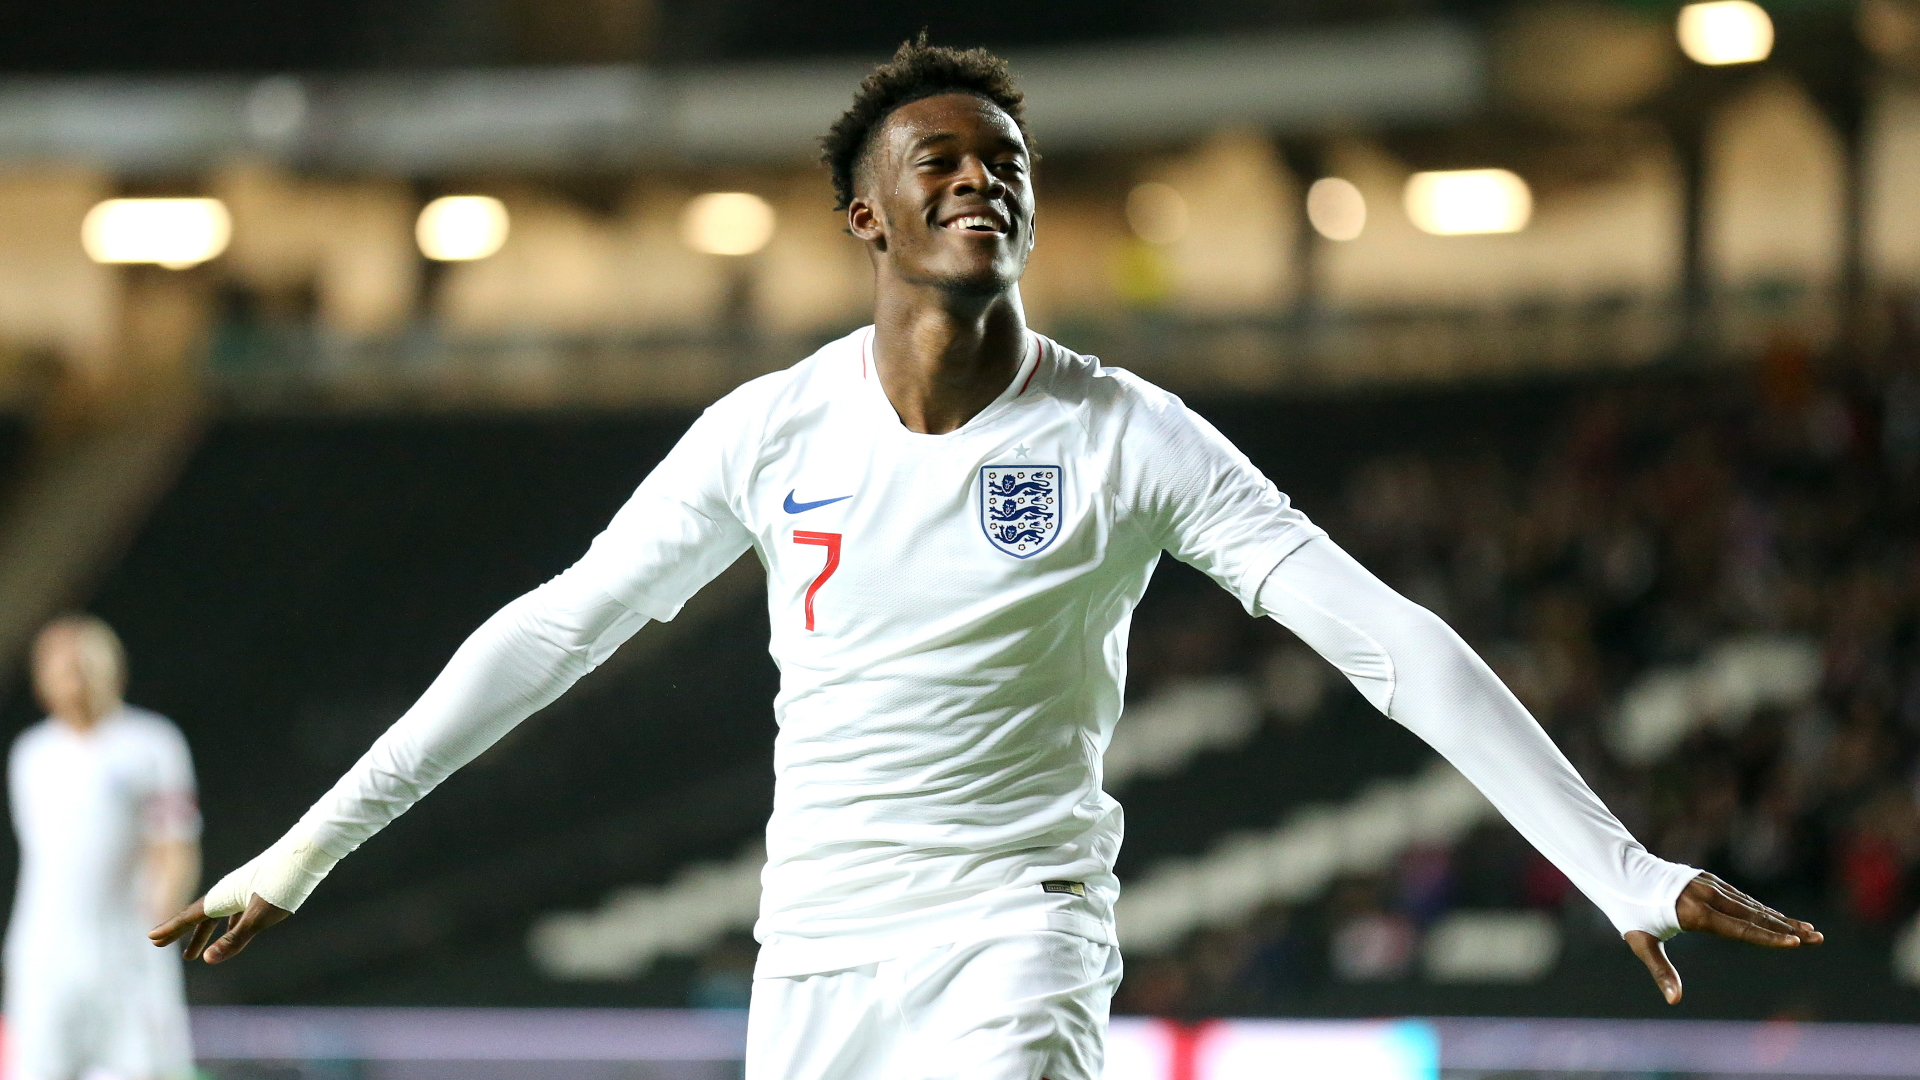 'I was speechless' – Hudson-Odoi's England wondergoal just a small taste of things to come for Chelsea star, says Guehi